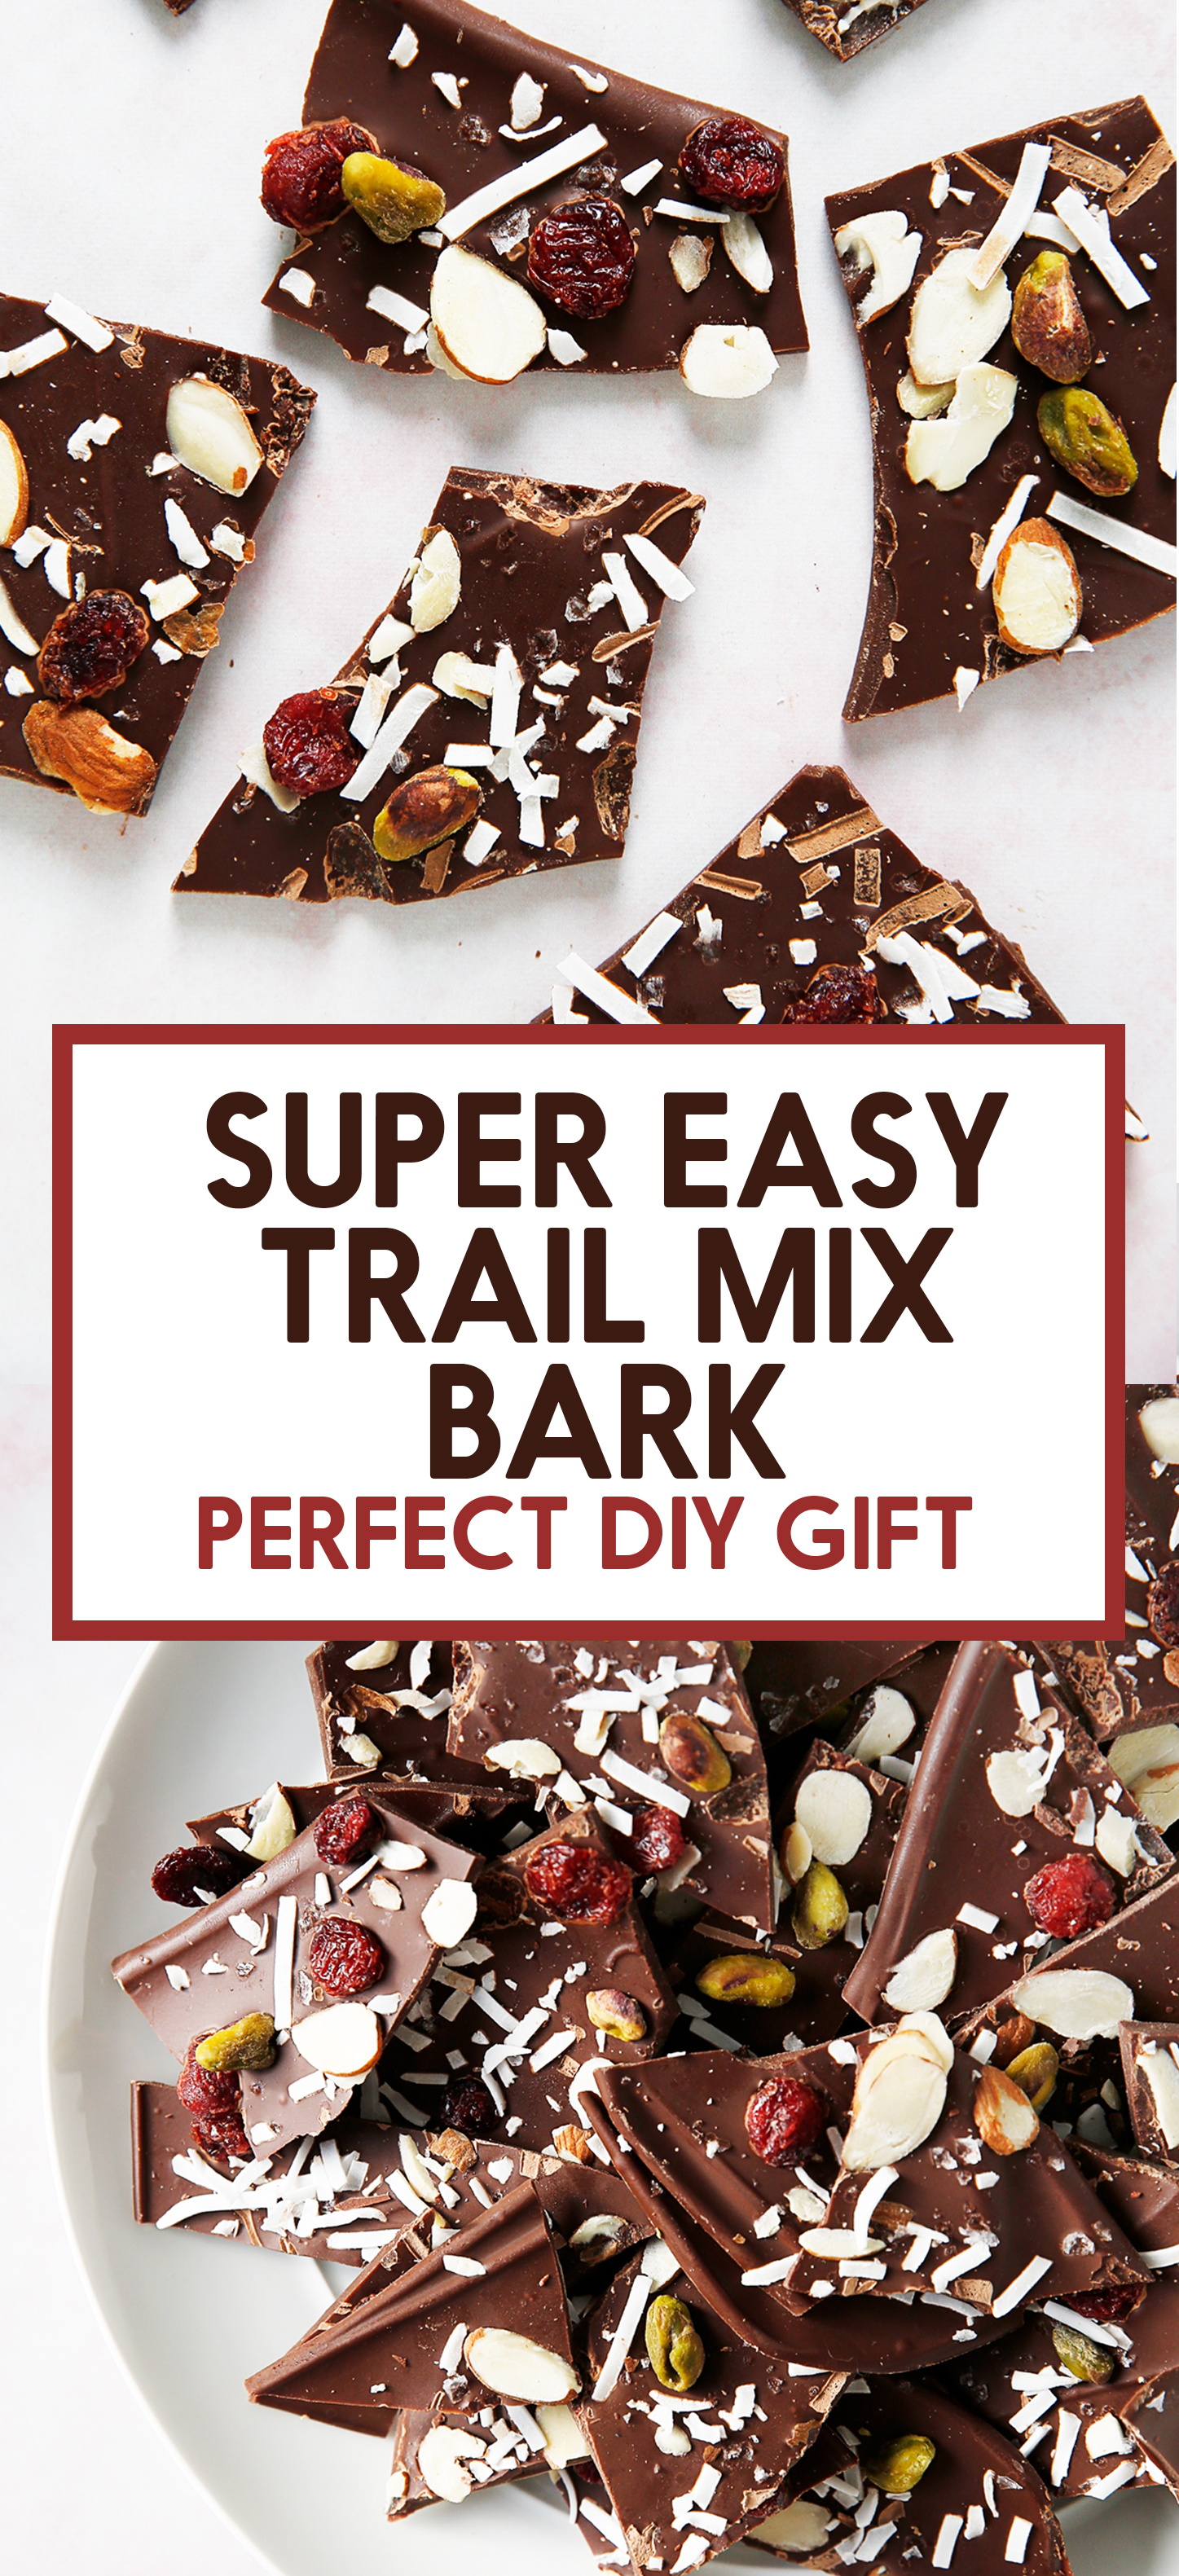 Lexi S Clean Kitchen Sea Salt Trail Mix Chocolate Bark